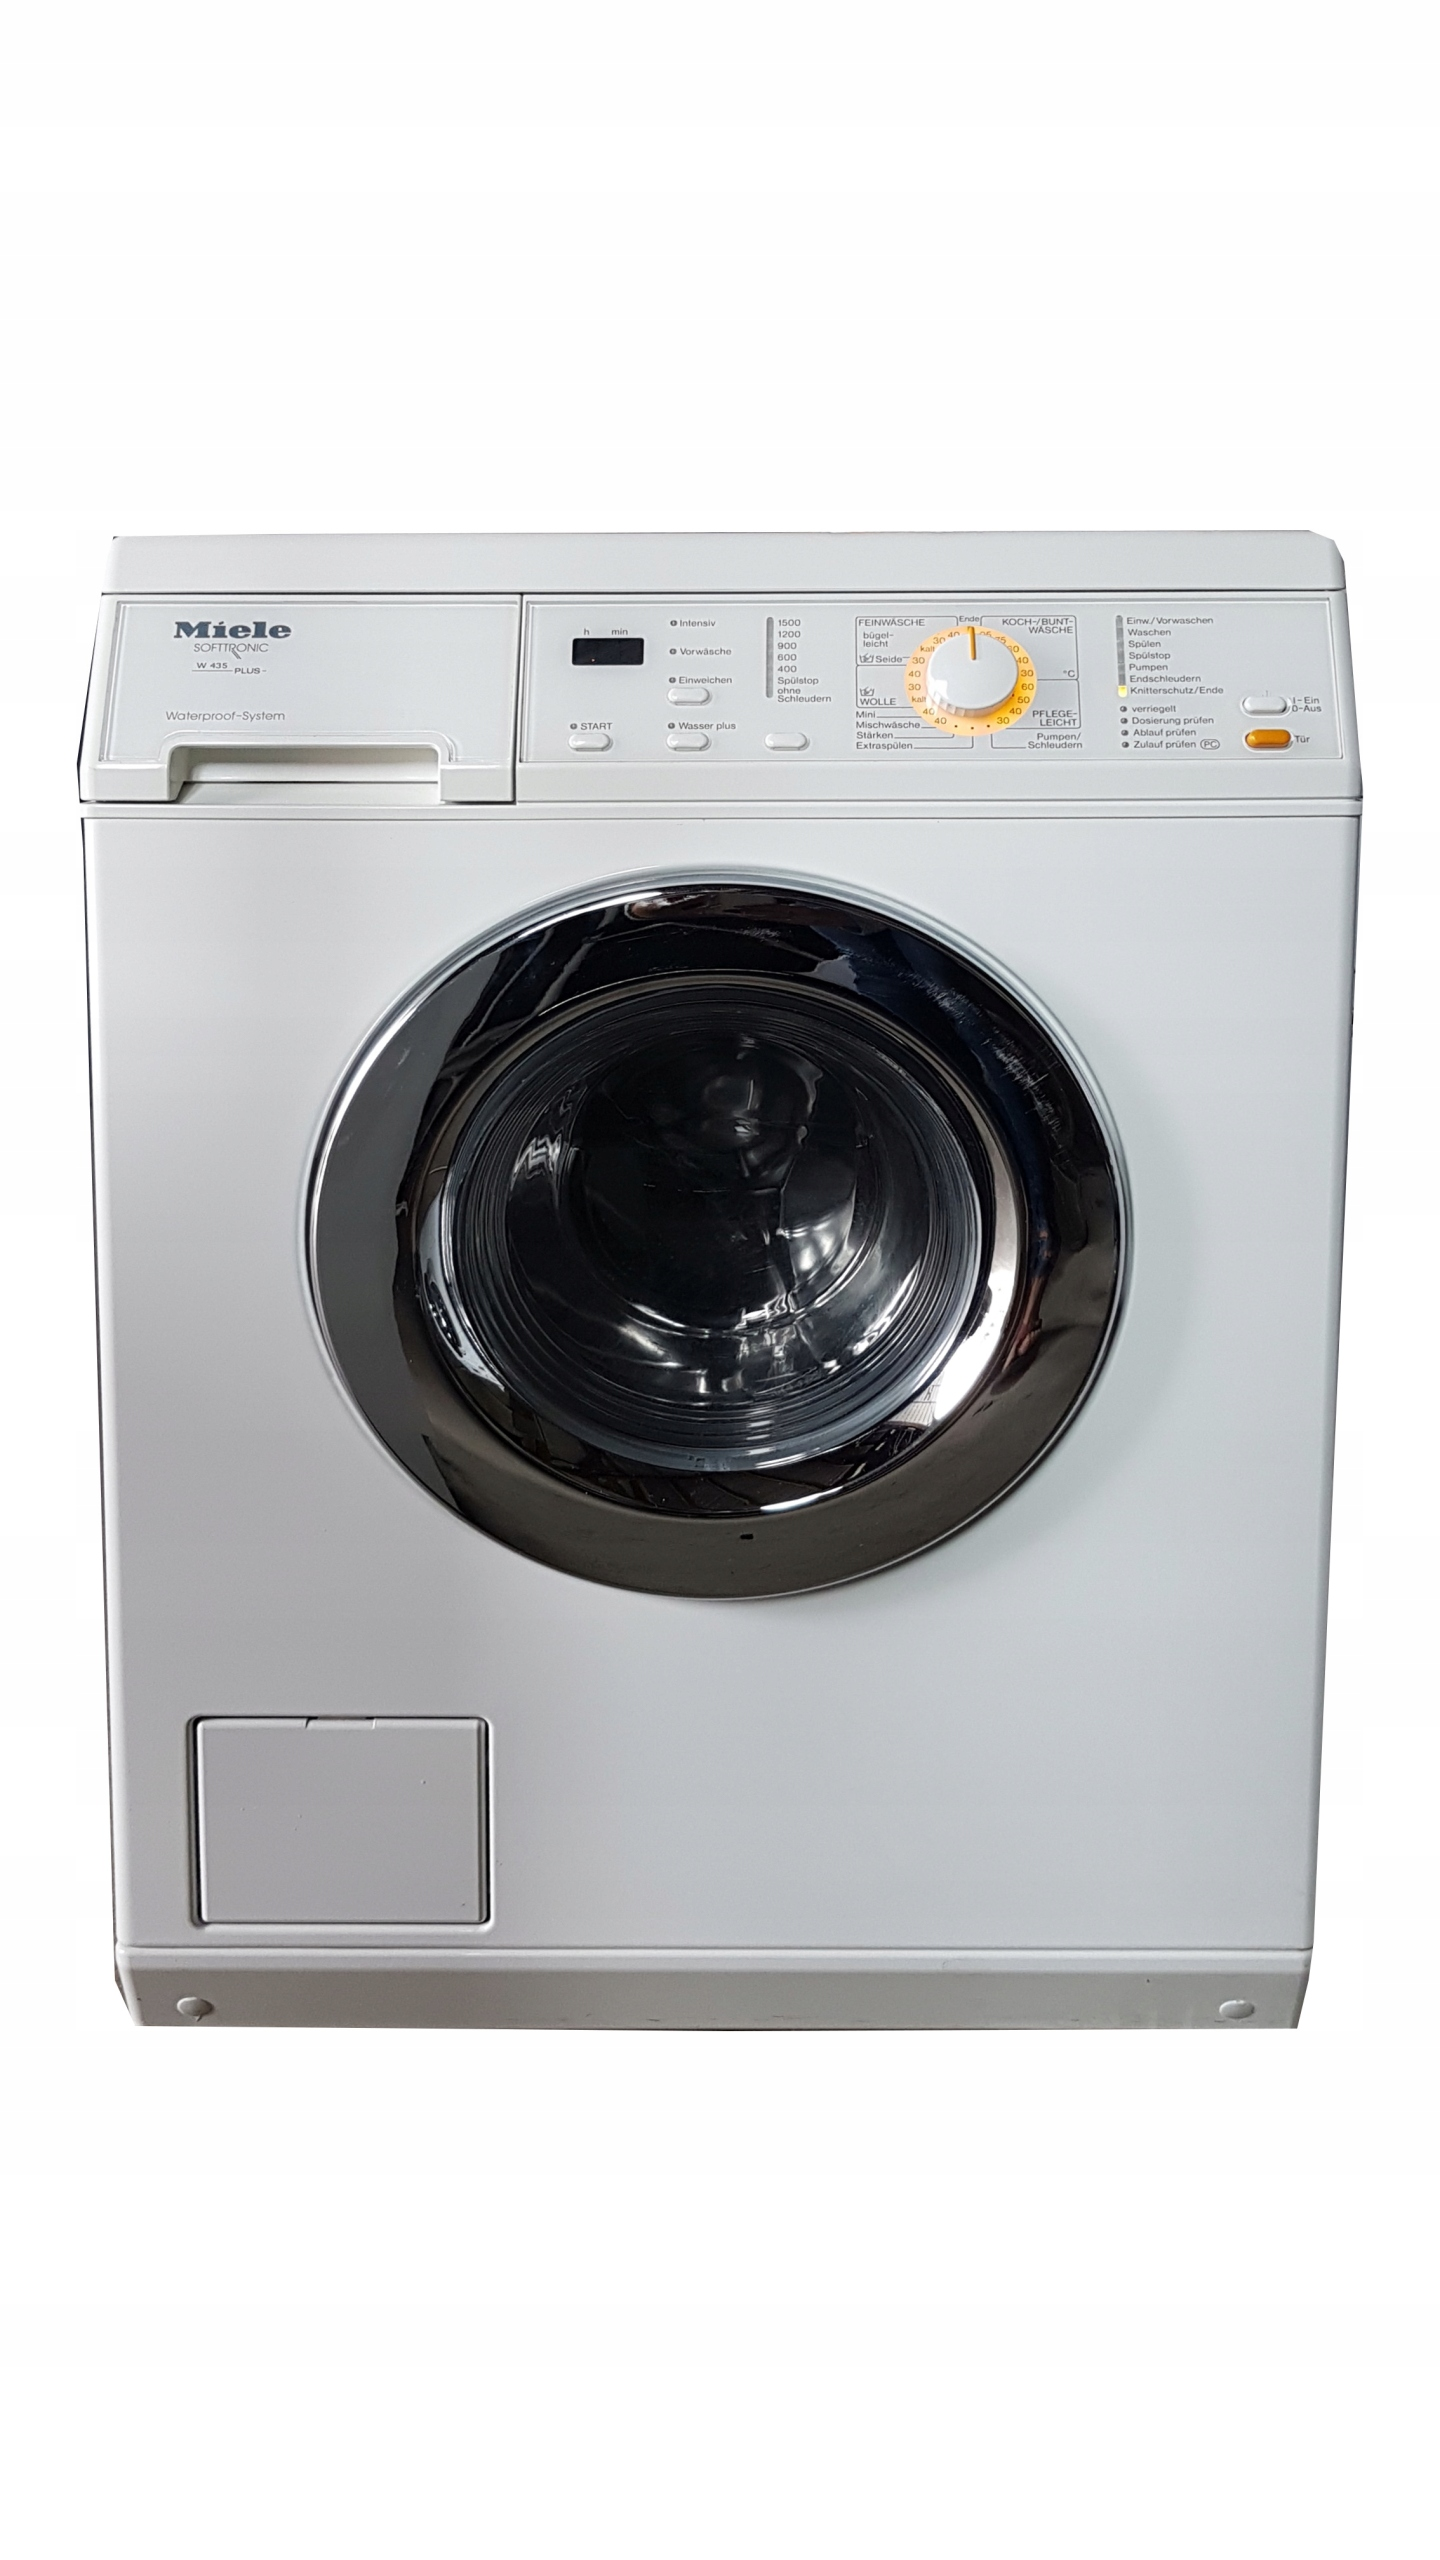 PRALKA MIELE SOFTTRONIC W 435 PLUS